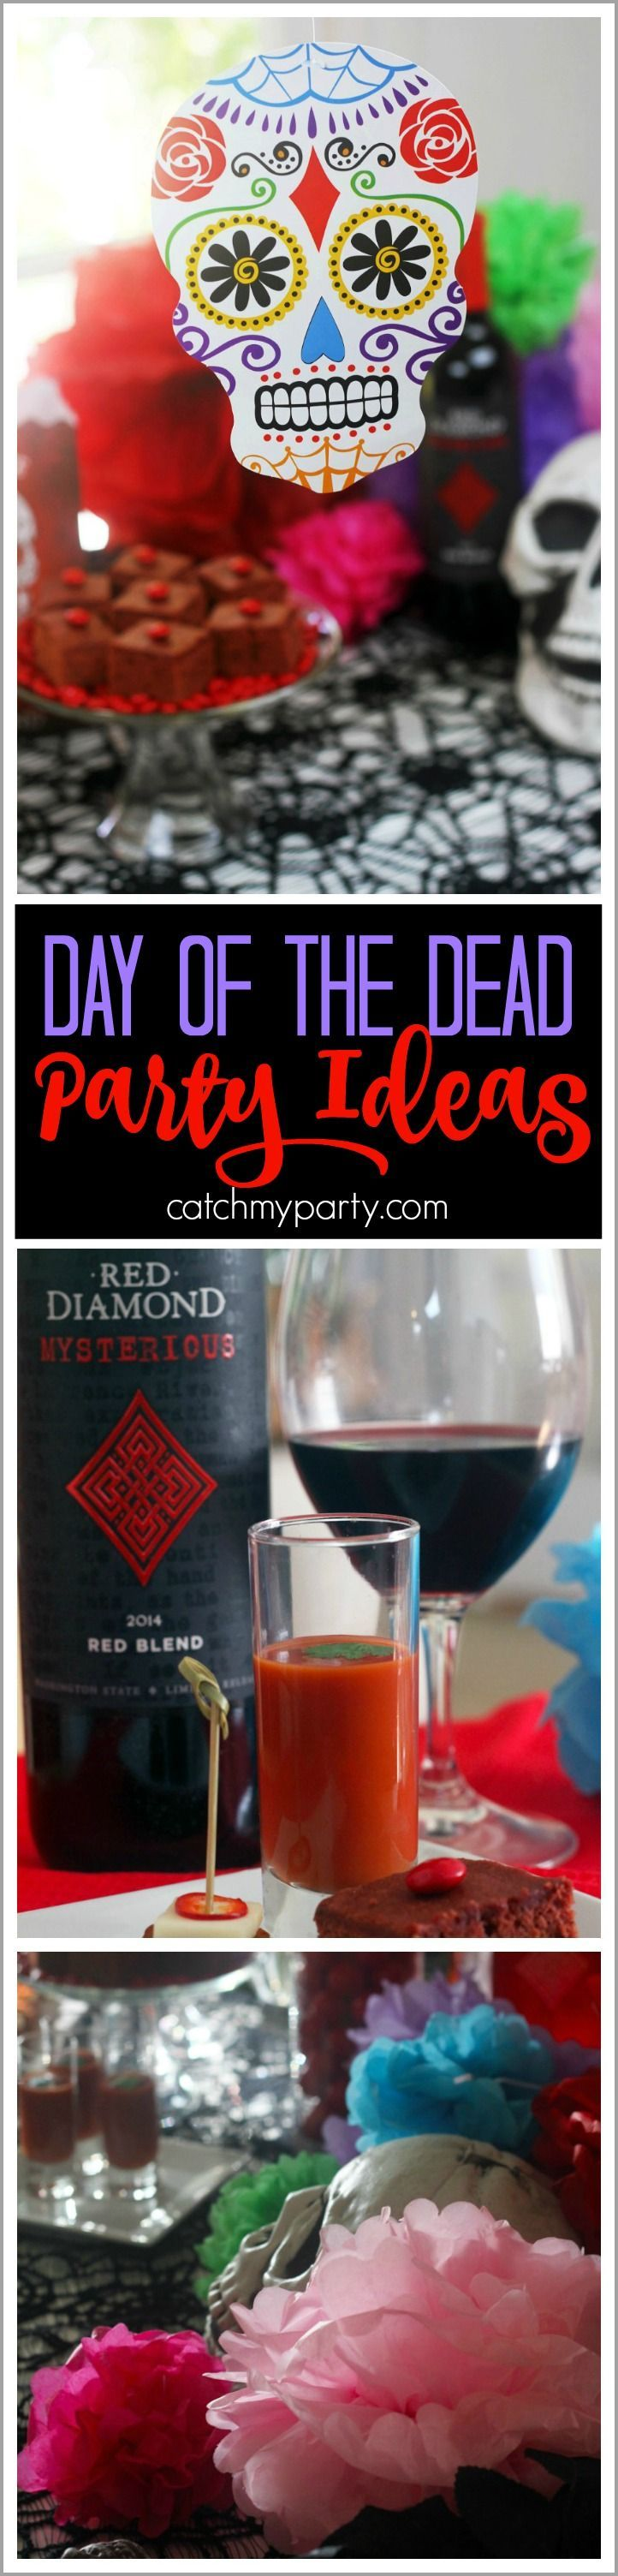 902 Best Images About Halloween Party Ideas On Pinterest